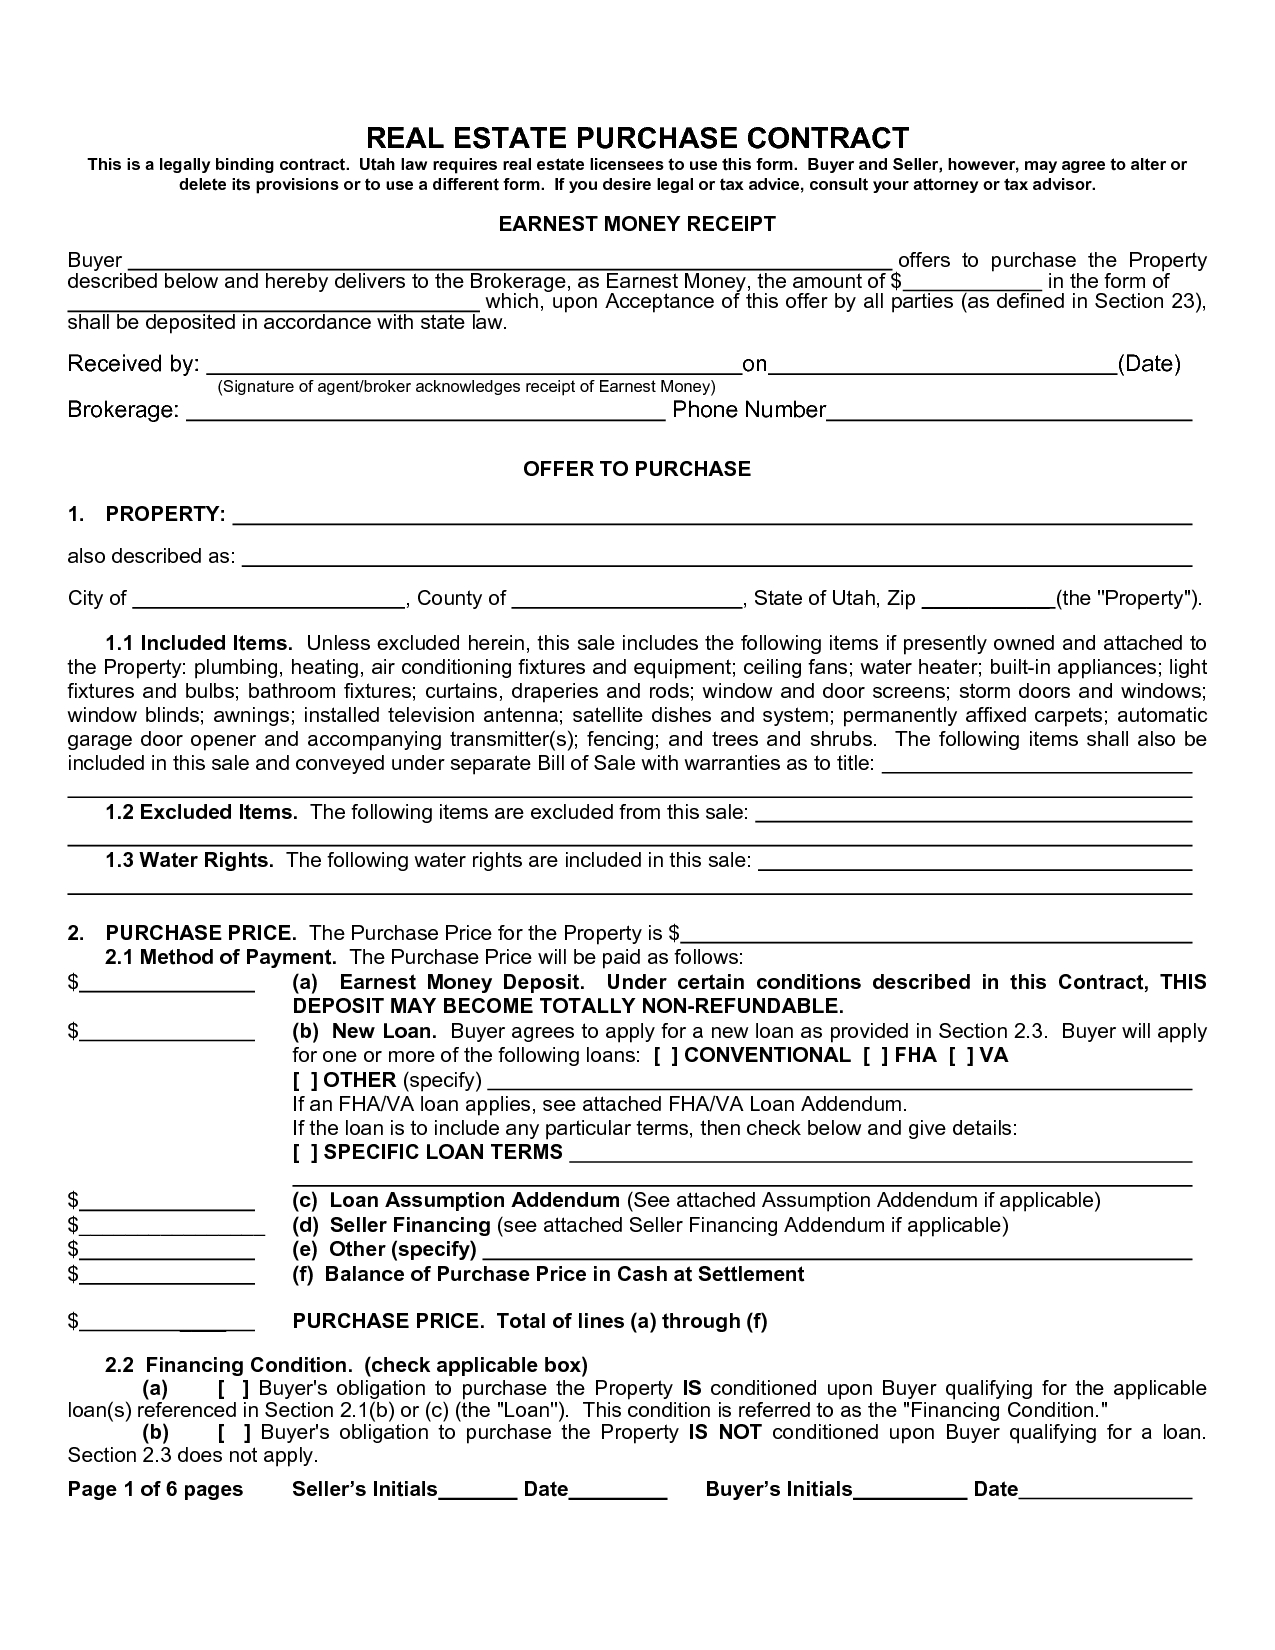 Real Estate Purchase Agreement Form Sample Image Gallery  Imggrid Within Home Purchase Agreement Template